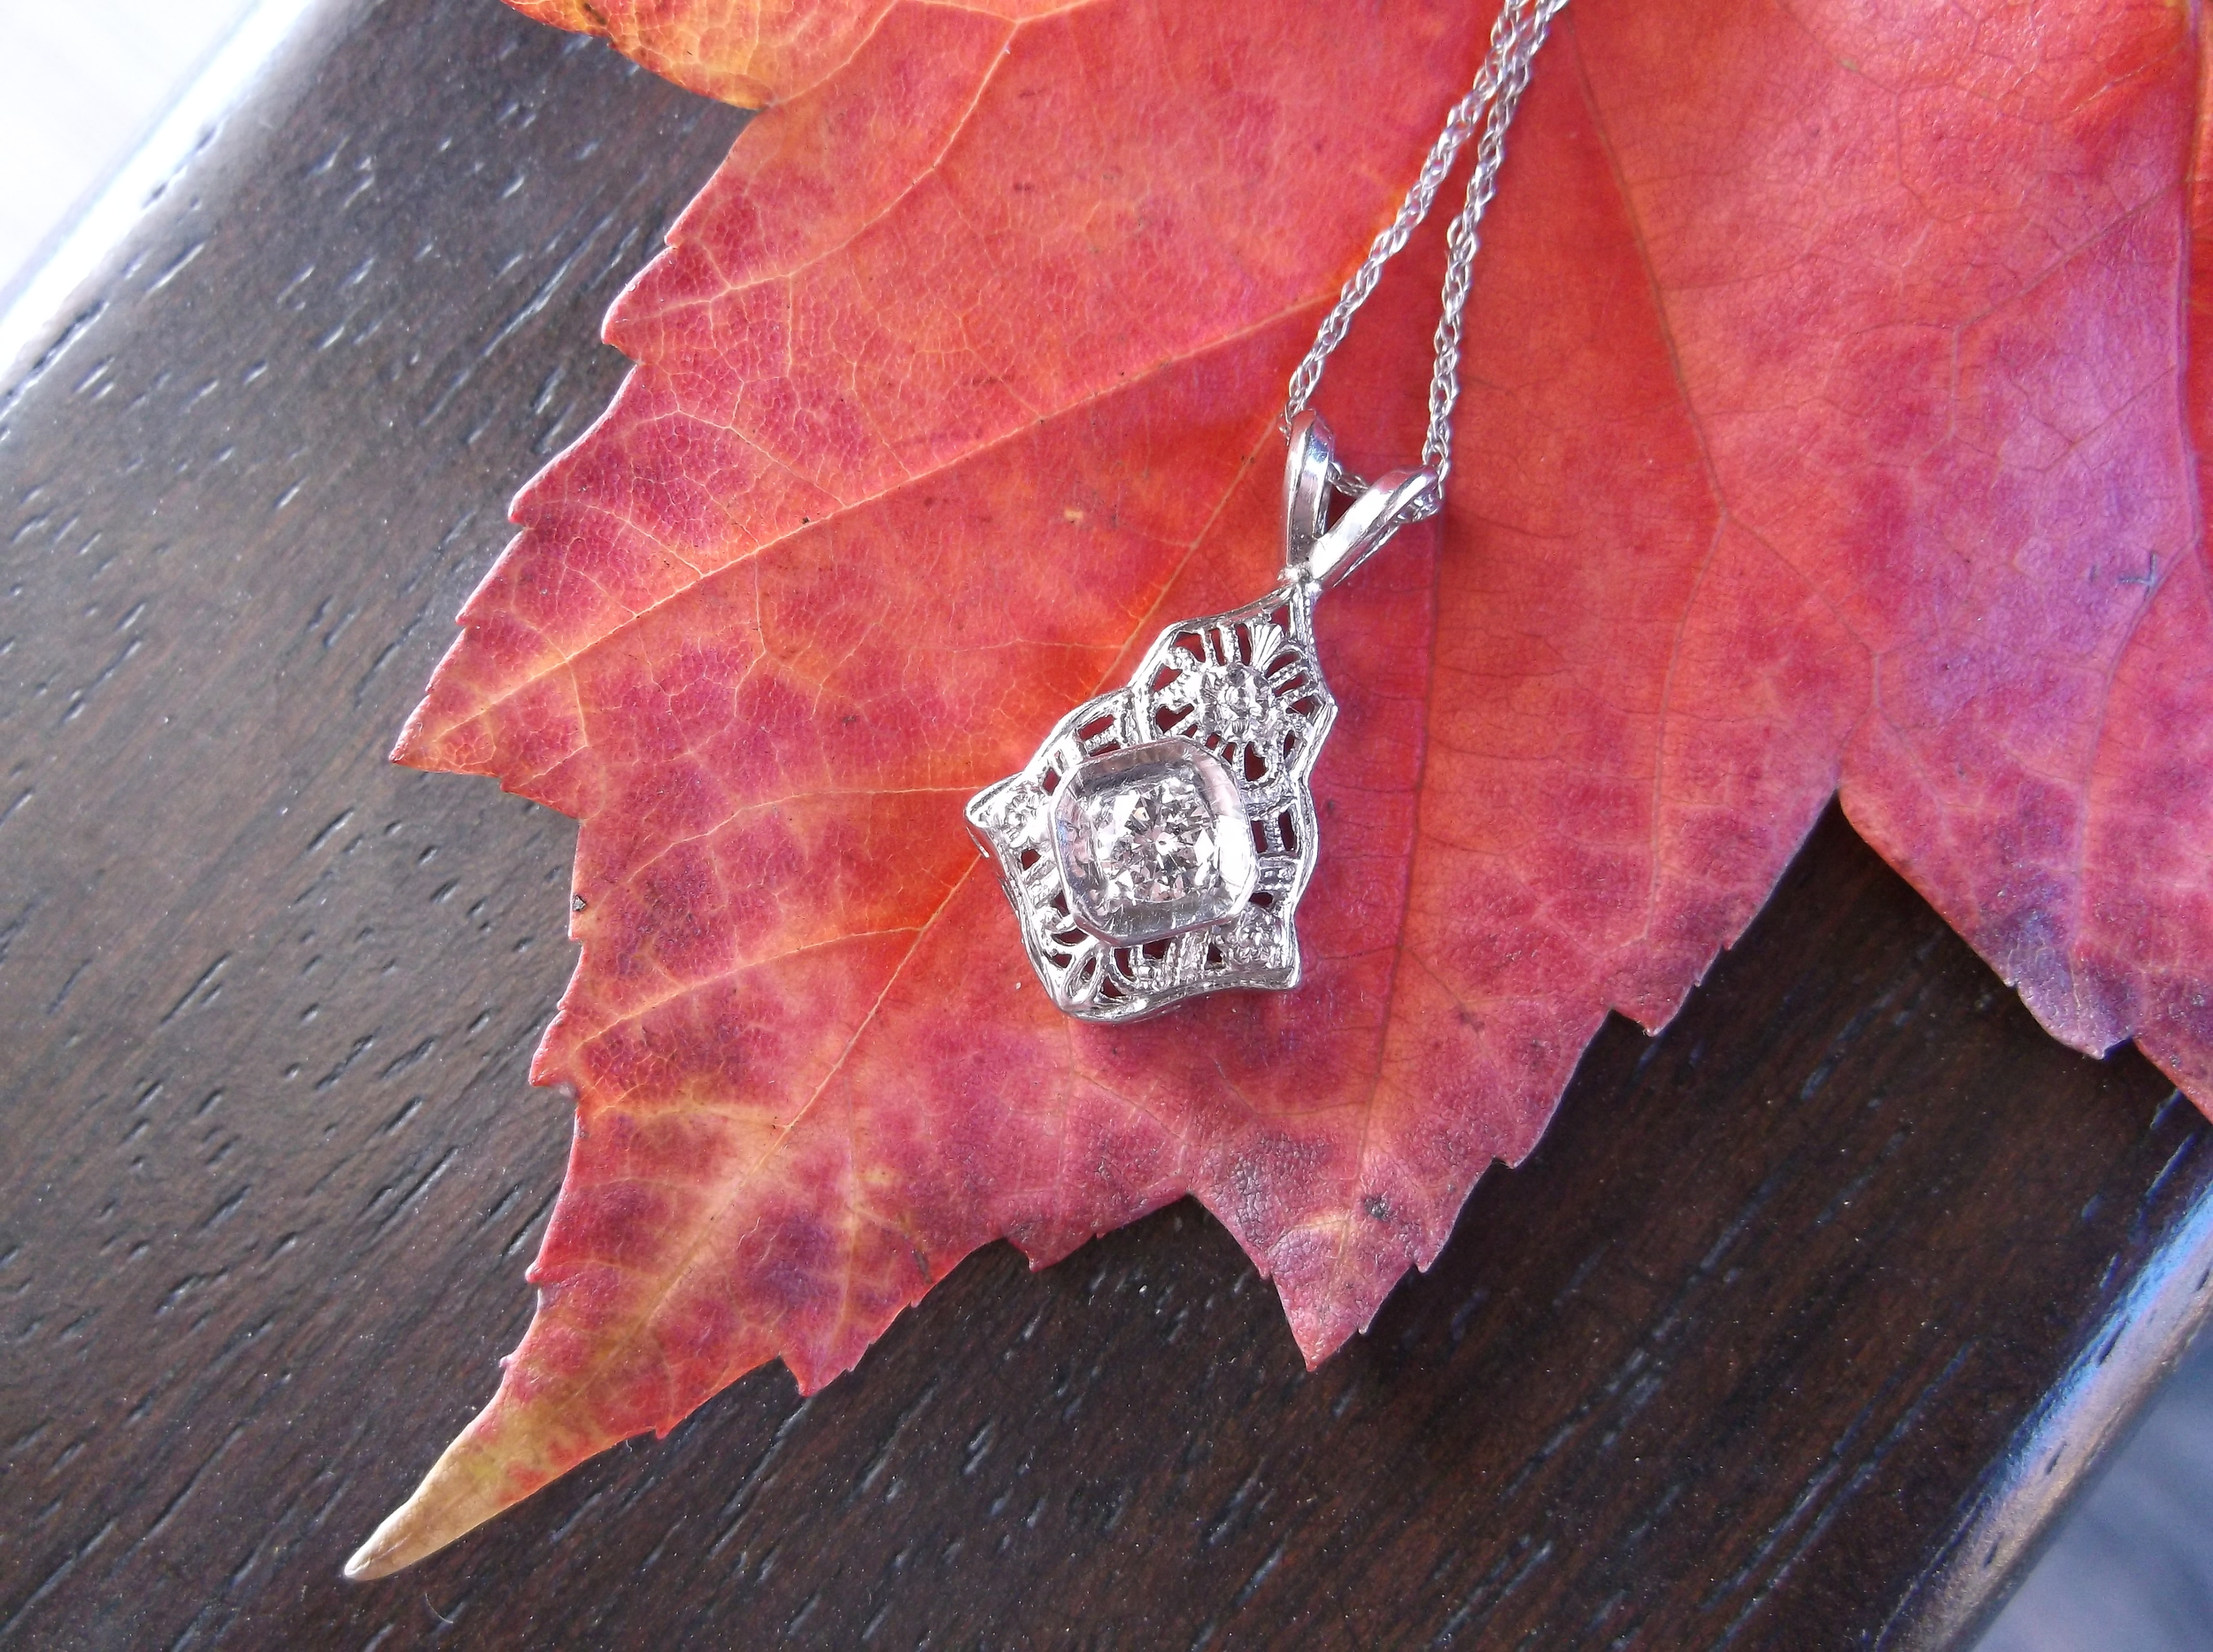 """!!!NEW CONTEST!!!  This Thanksgiving, we are thankful for our fans! To say thanks for all your continued support, we have decided to give away this gorgous 1920's white gold filigree and diamond pendant! Simply """"like"""" and """"share"""" this photo and """"like"""" our page and those """"likes/shares"""" will be entered into the drawing! We cannot thank our fans enough for the kind words and support that we continue to recieve through our Facebook page!  So... share our page with friends and family and like this photo and this gorgeous necklace could be yours!"""